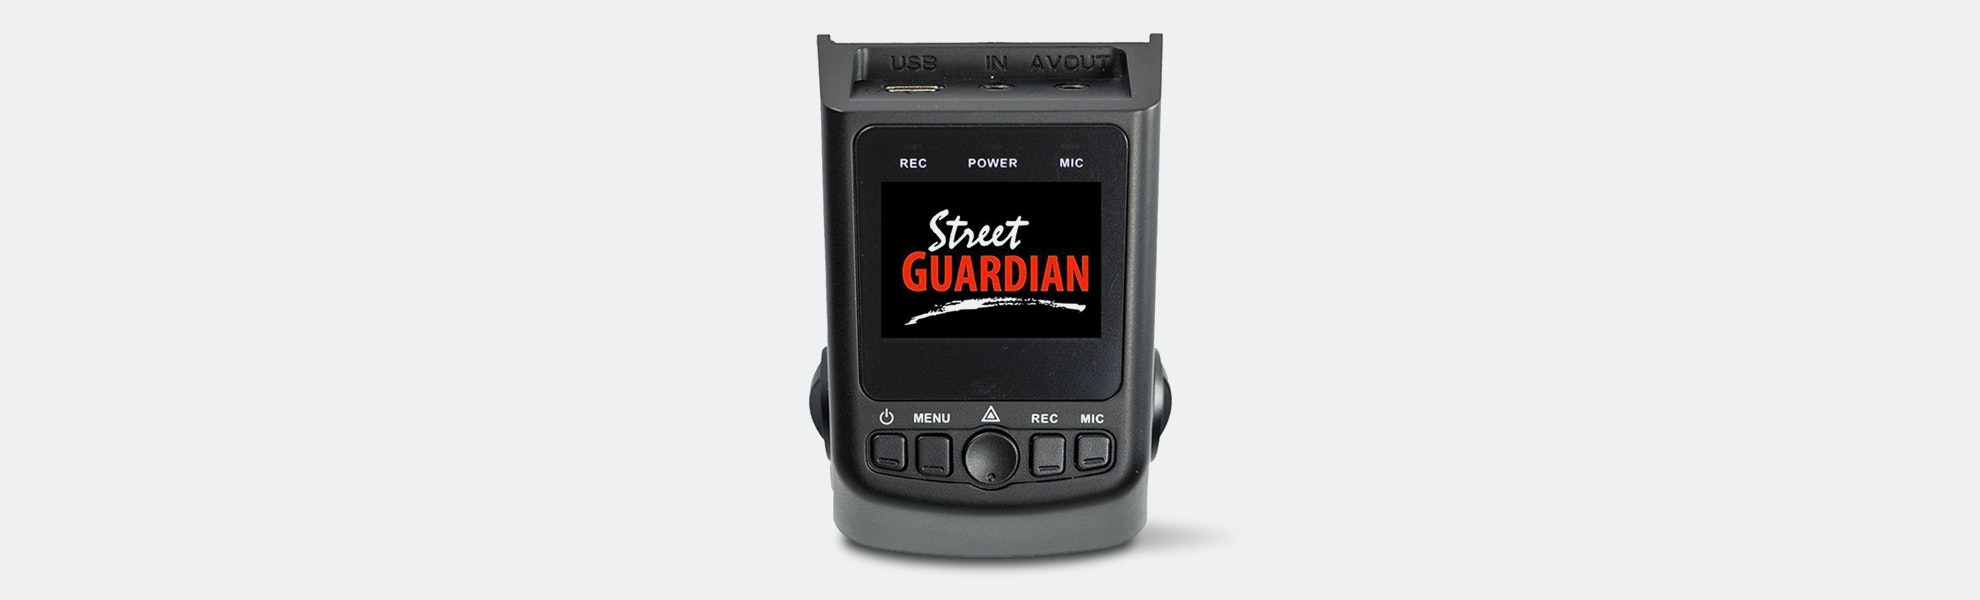 Street Guardian SG9665GC V3 Dash Cam